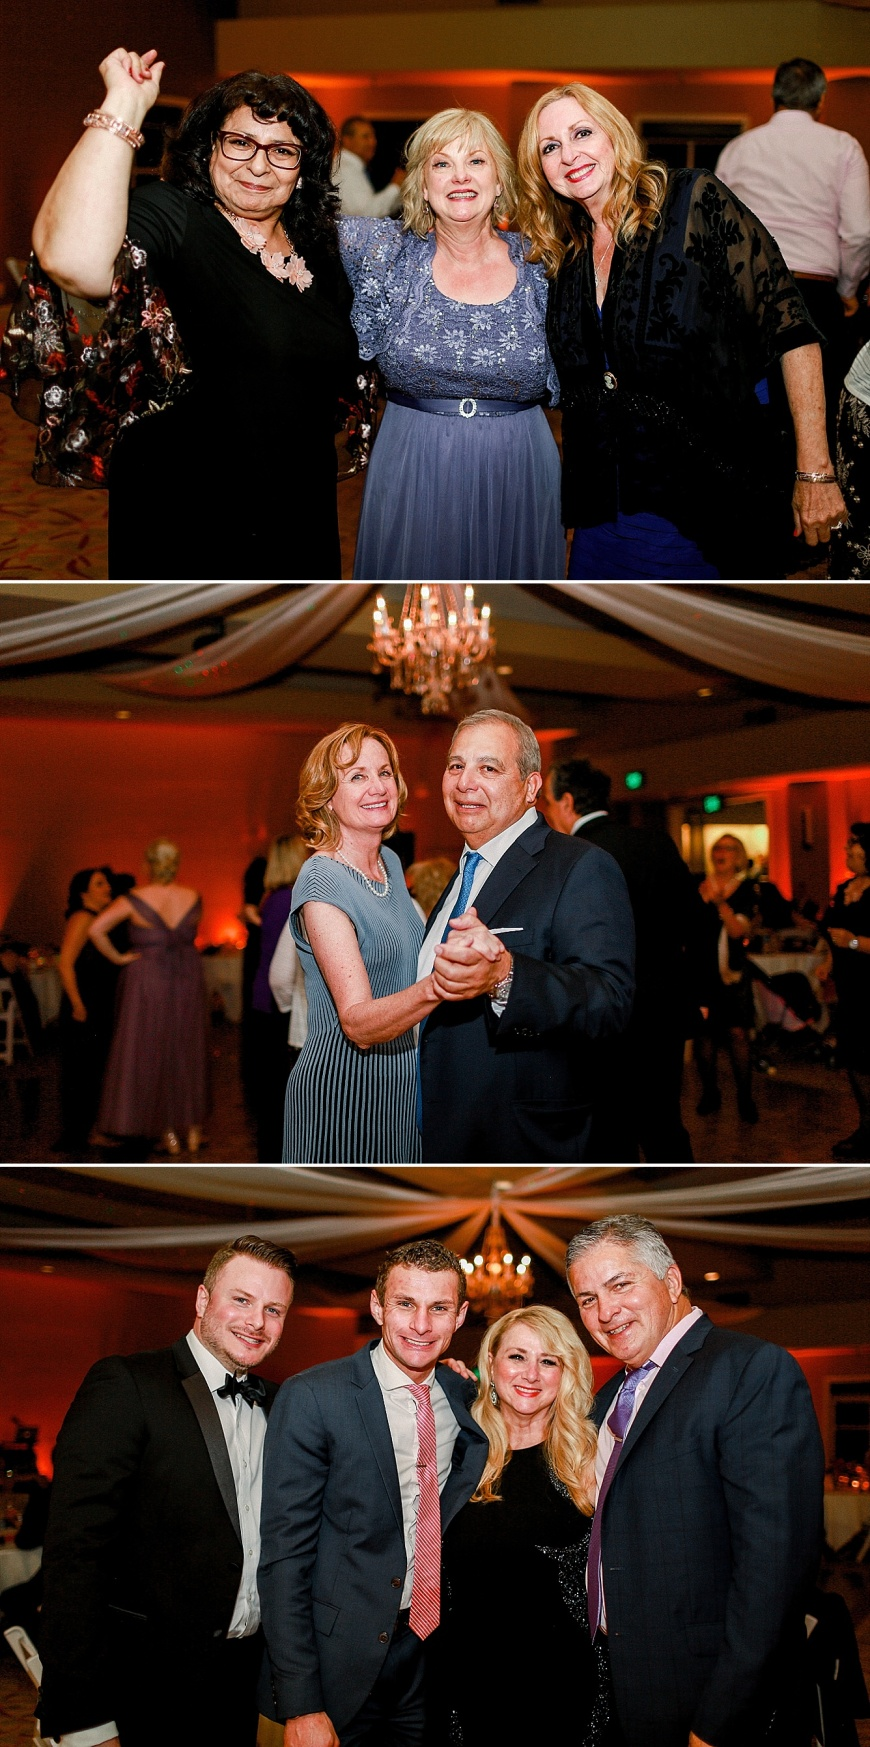 Chaminade-Resort-Santa-Cruz-Wedding Photographer_1122.jpg